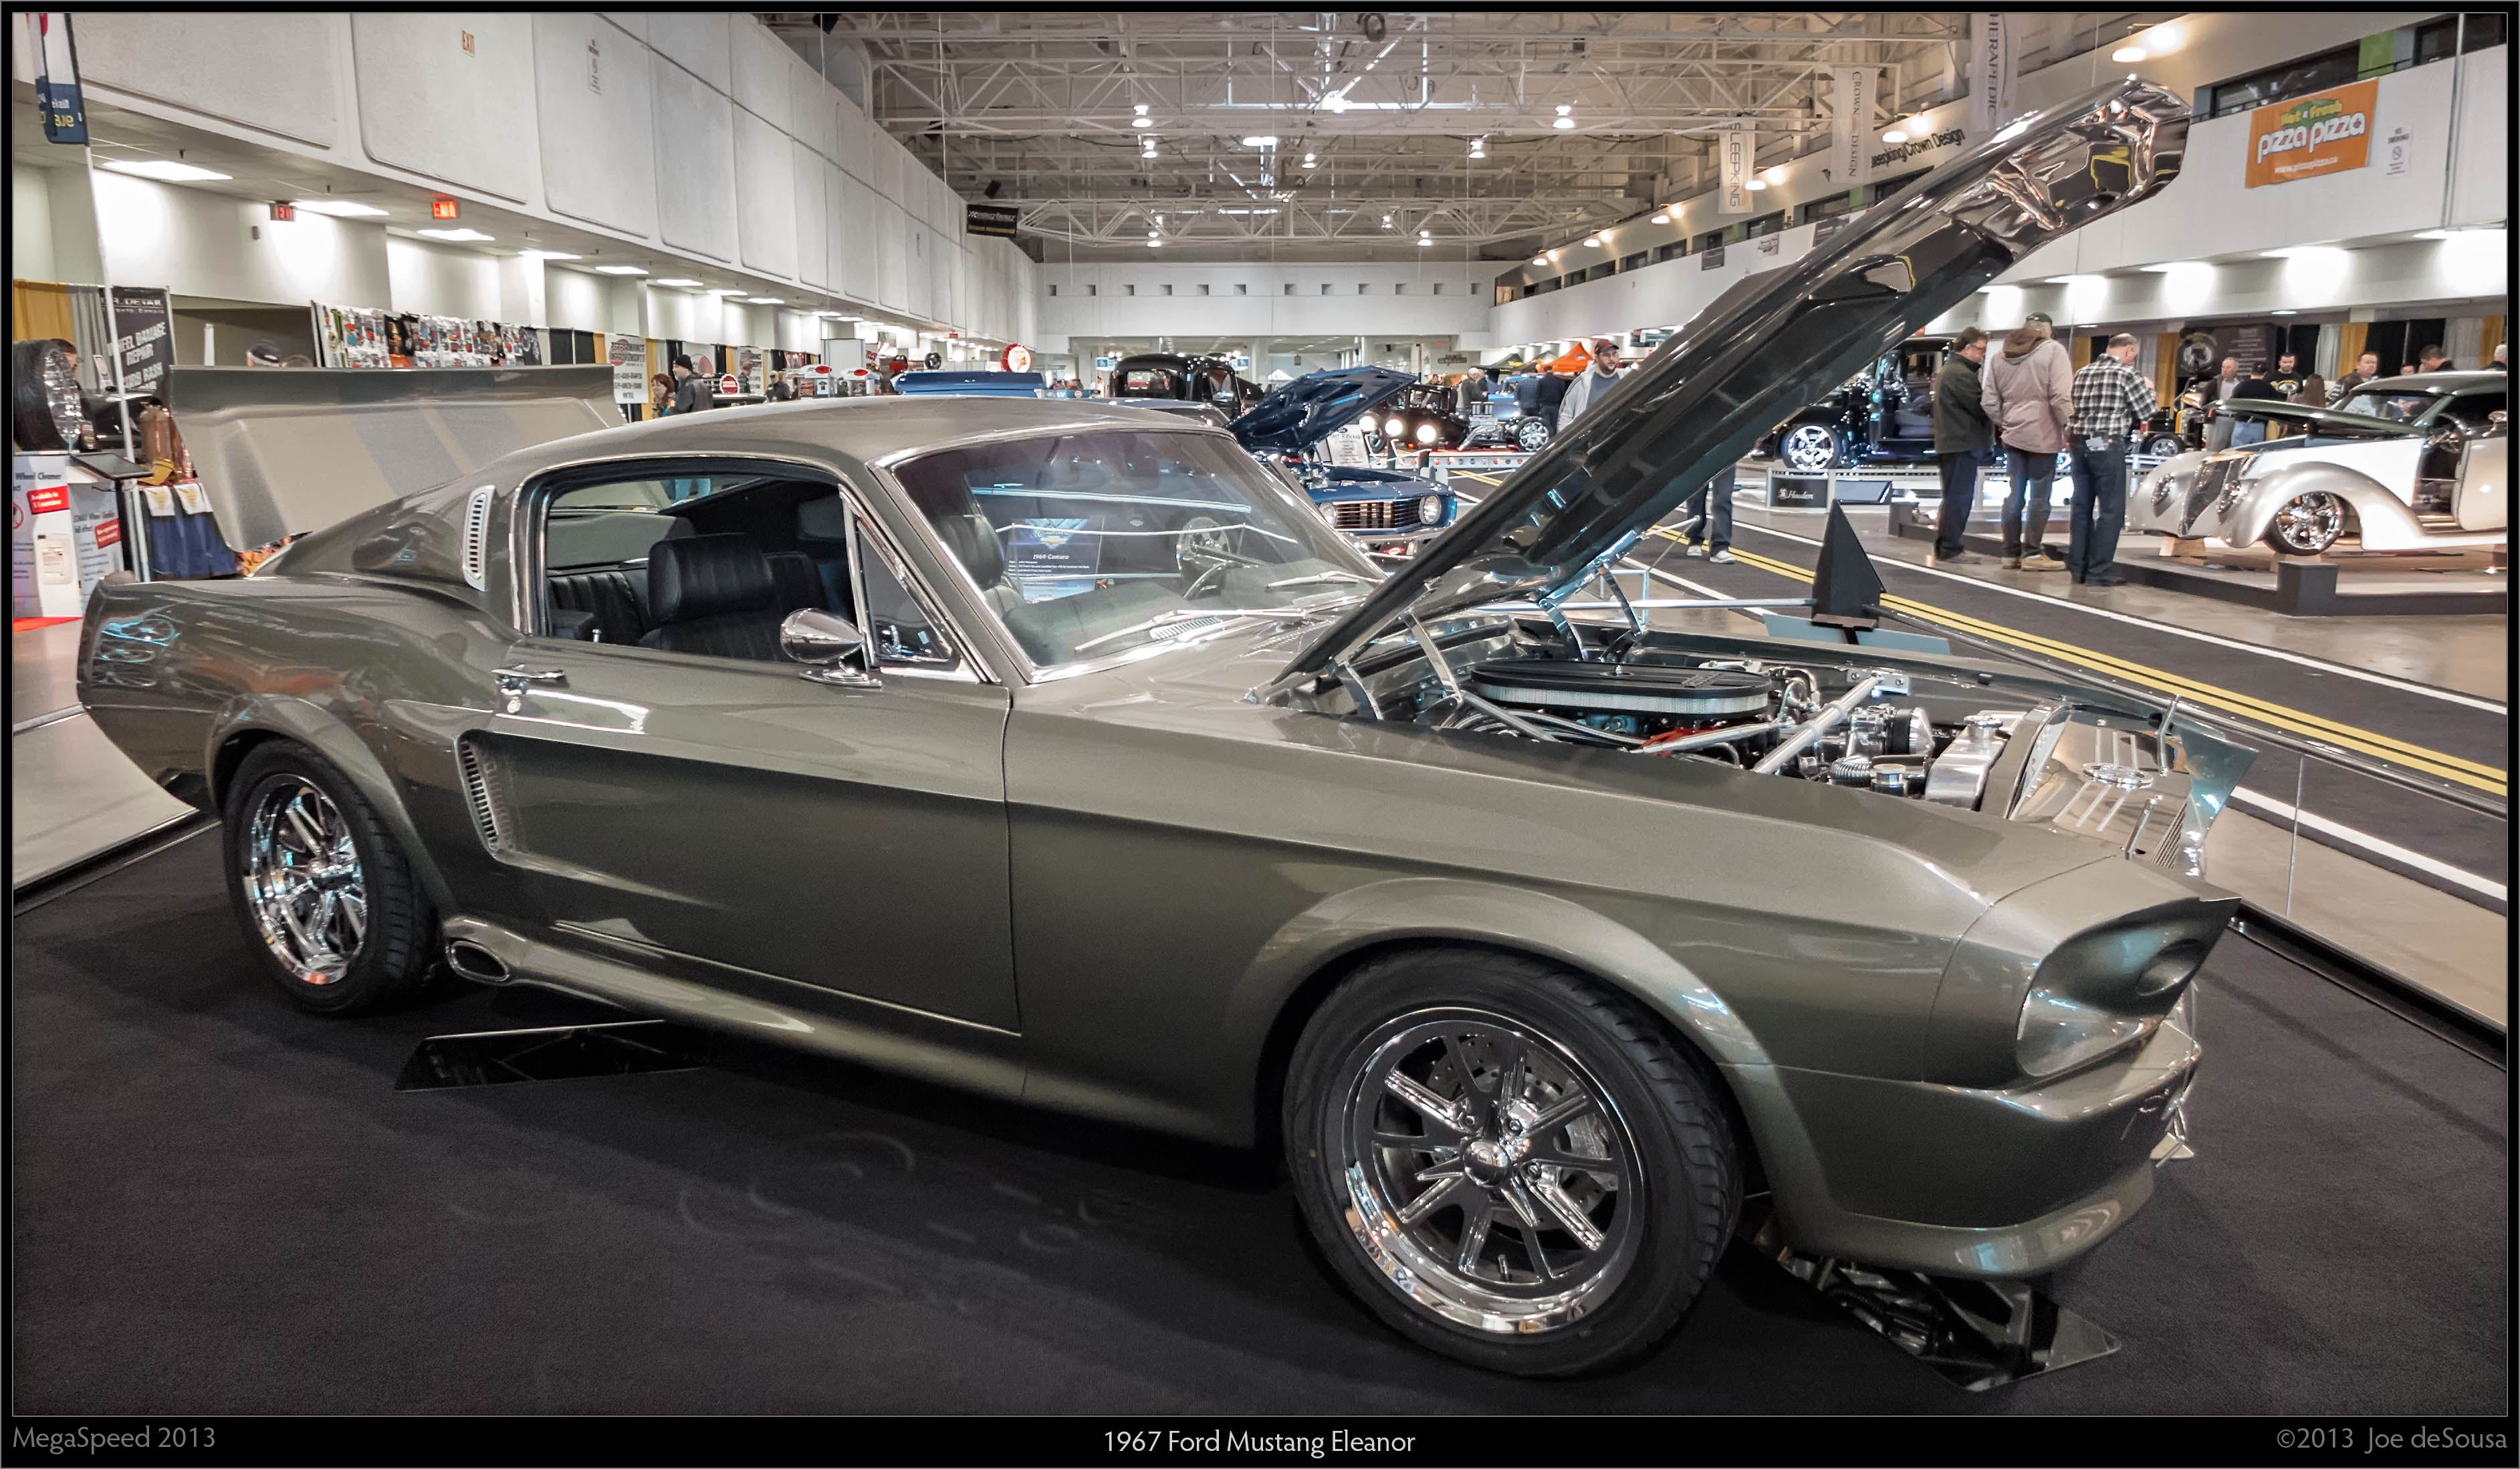 1967 ford mustang eleanor photo